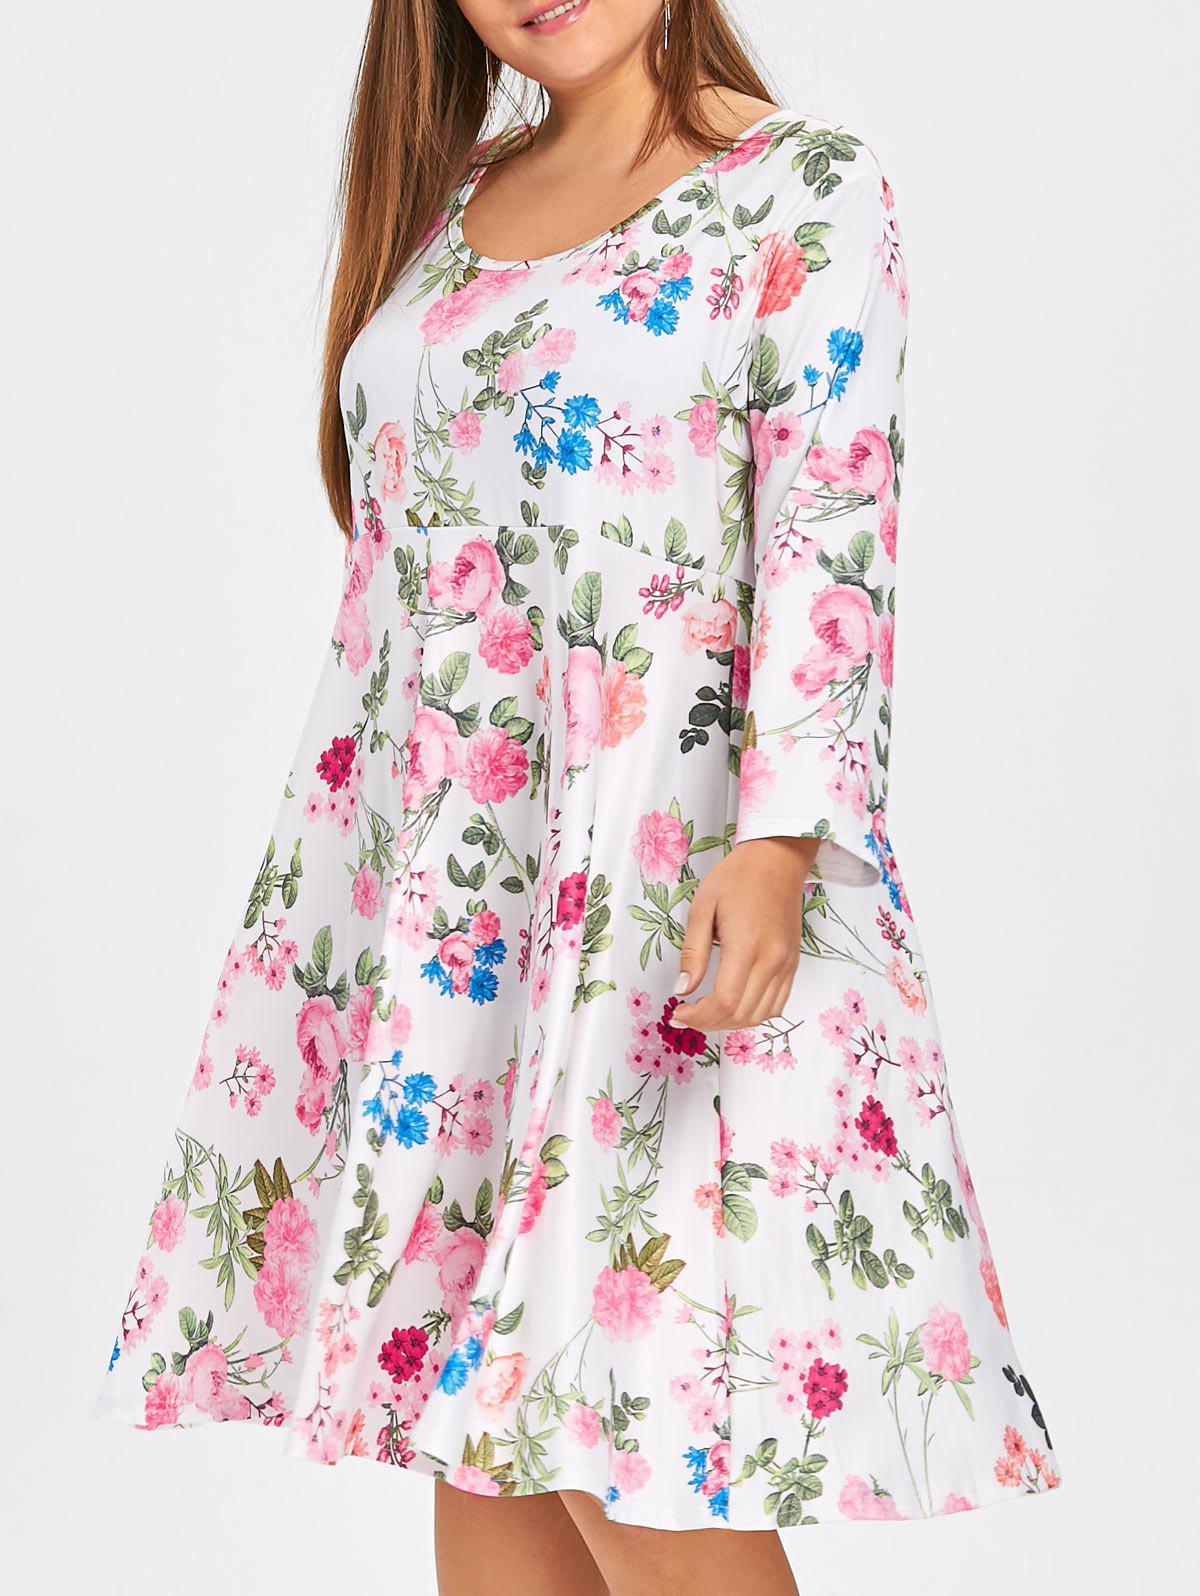 Plus Size Floral Skater Dress with Sleeves 237068705